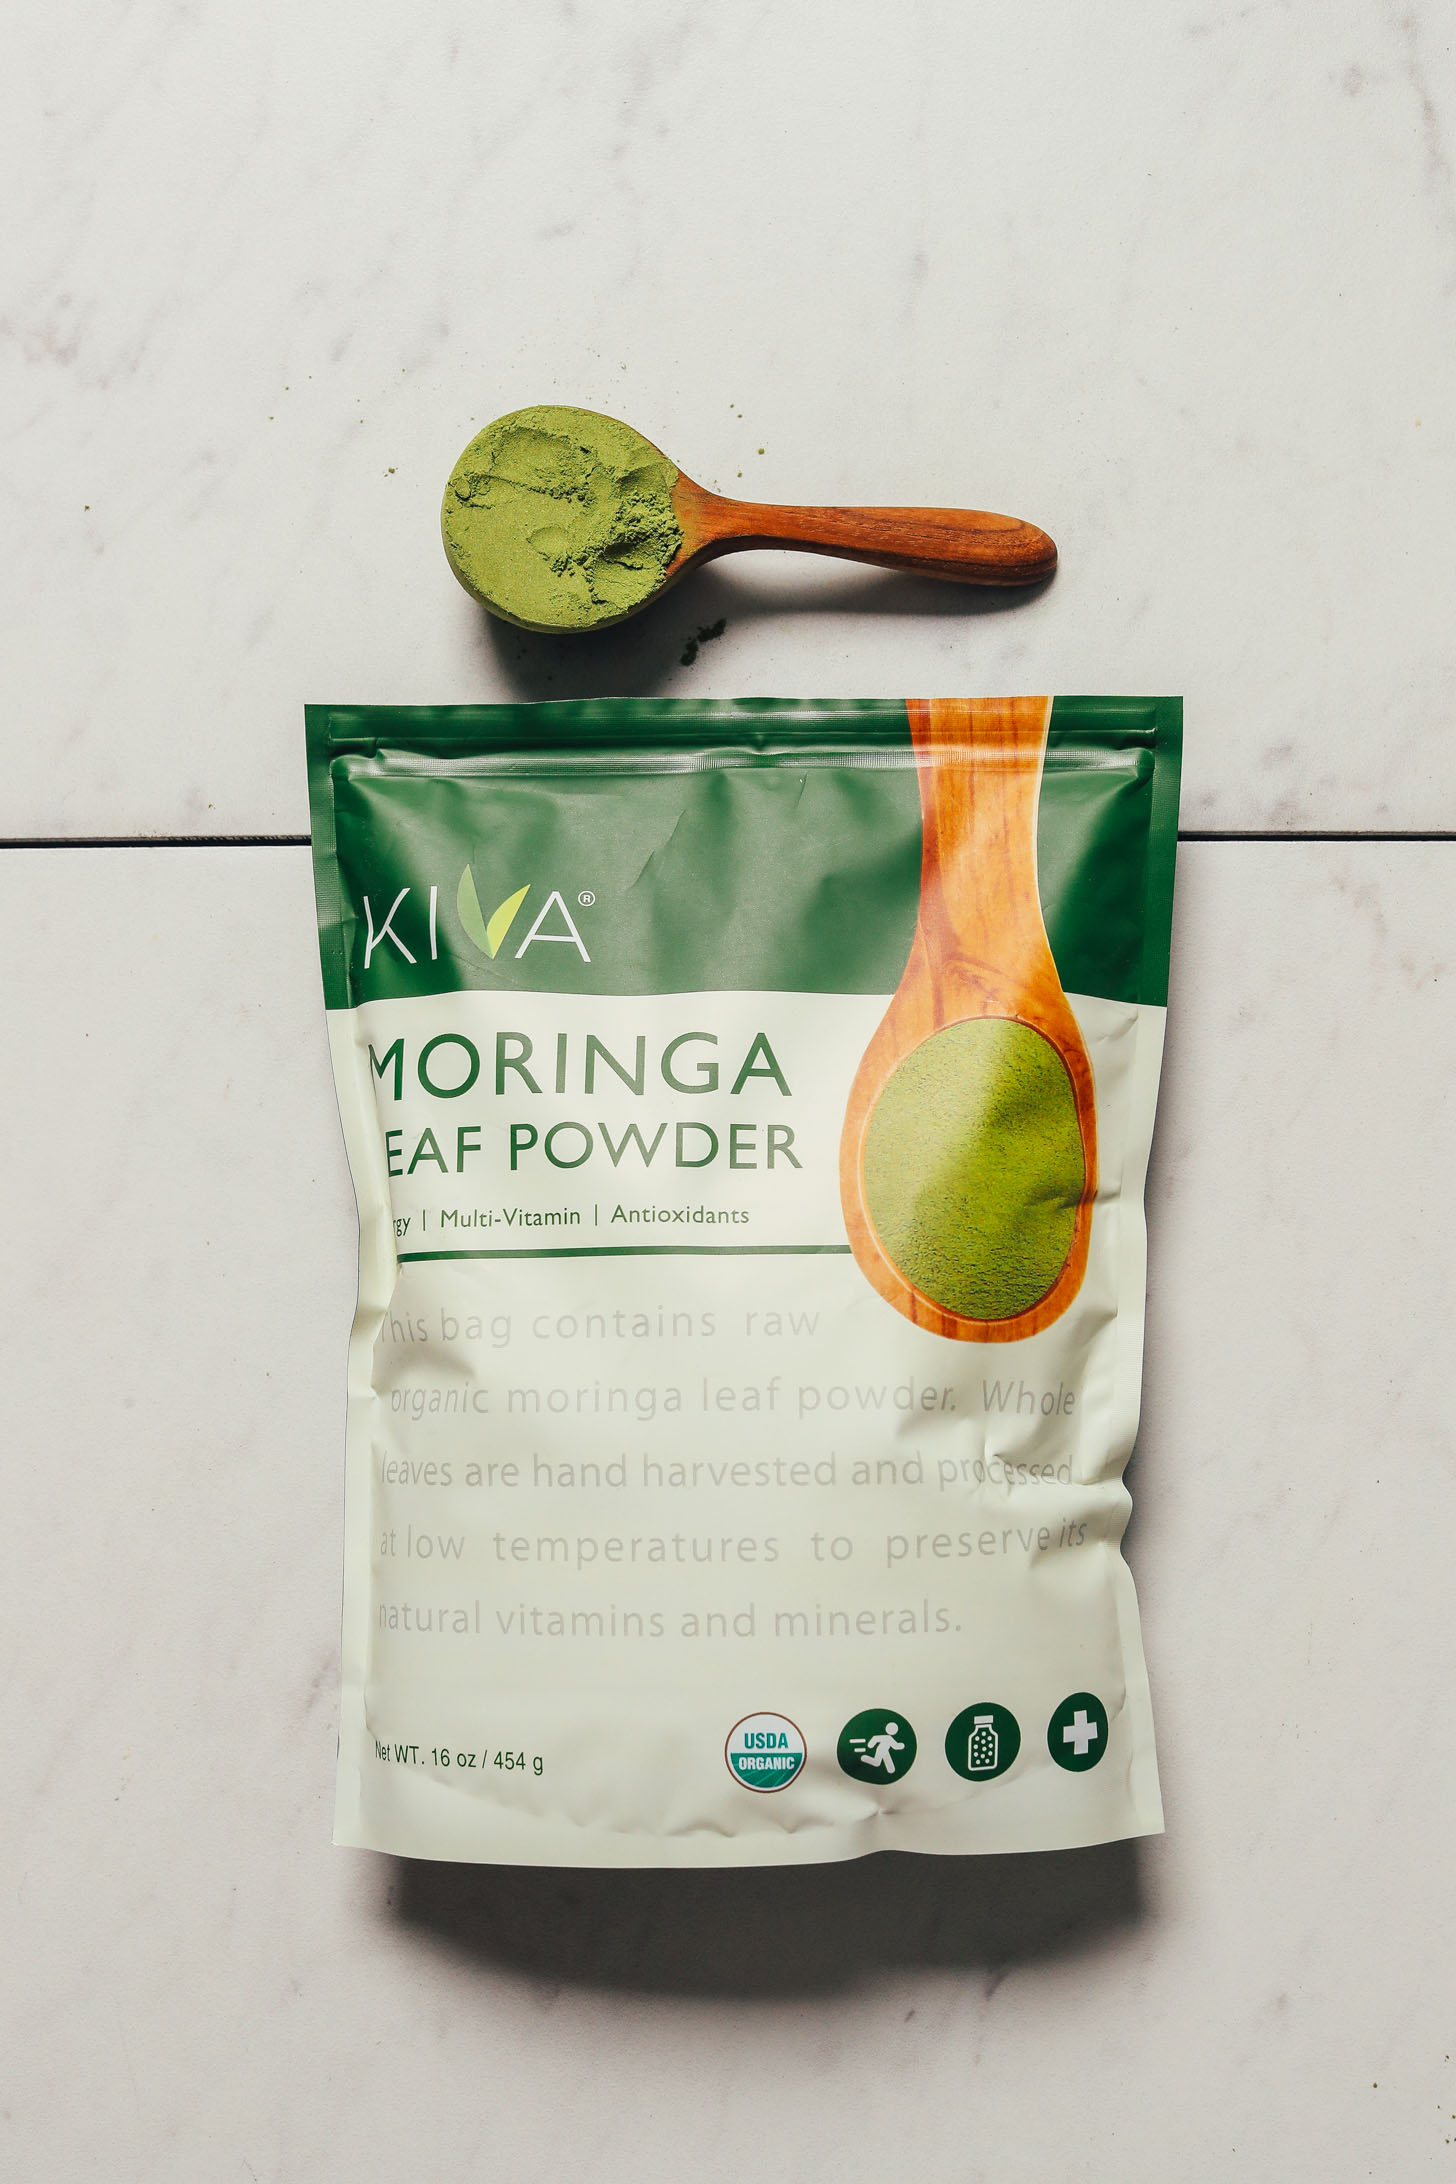 Package and spoonful of Kiva Moringa powder for our review of the best moringa powder brands